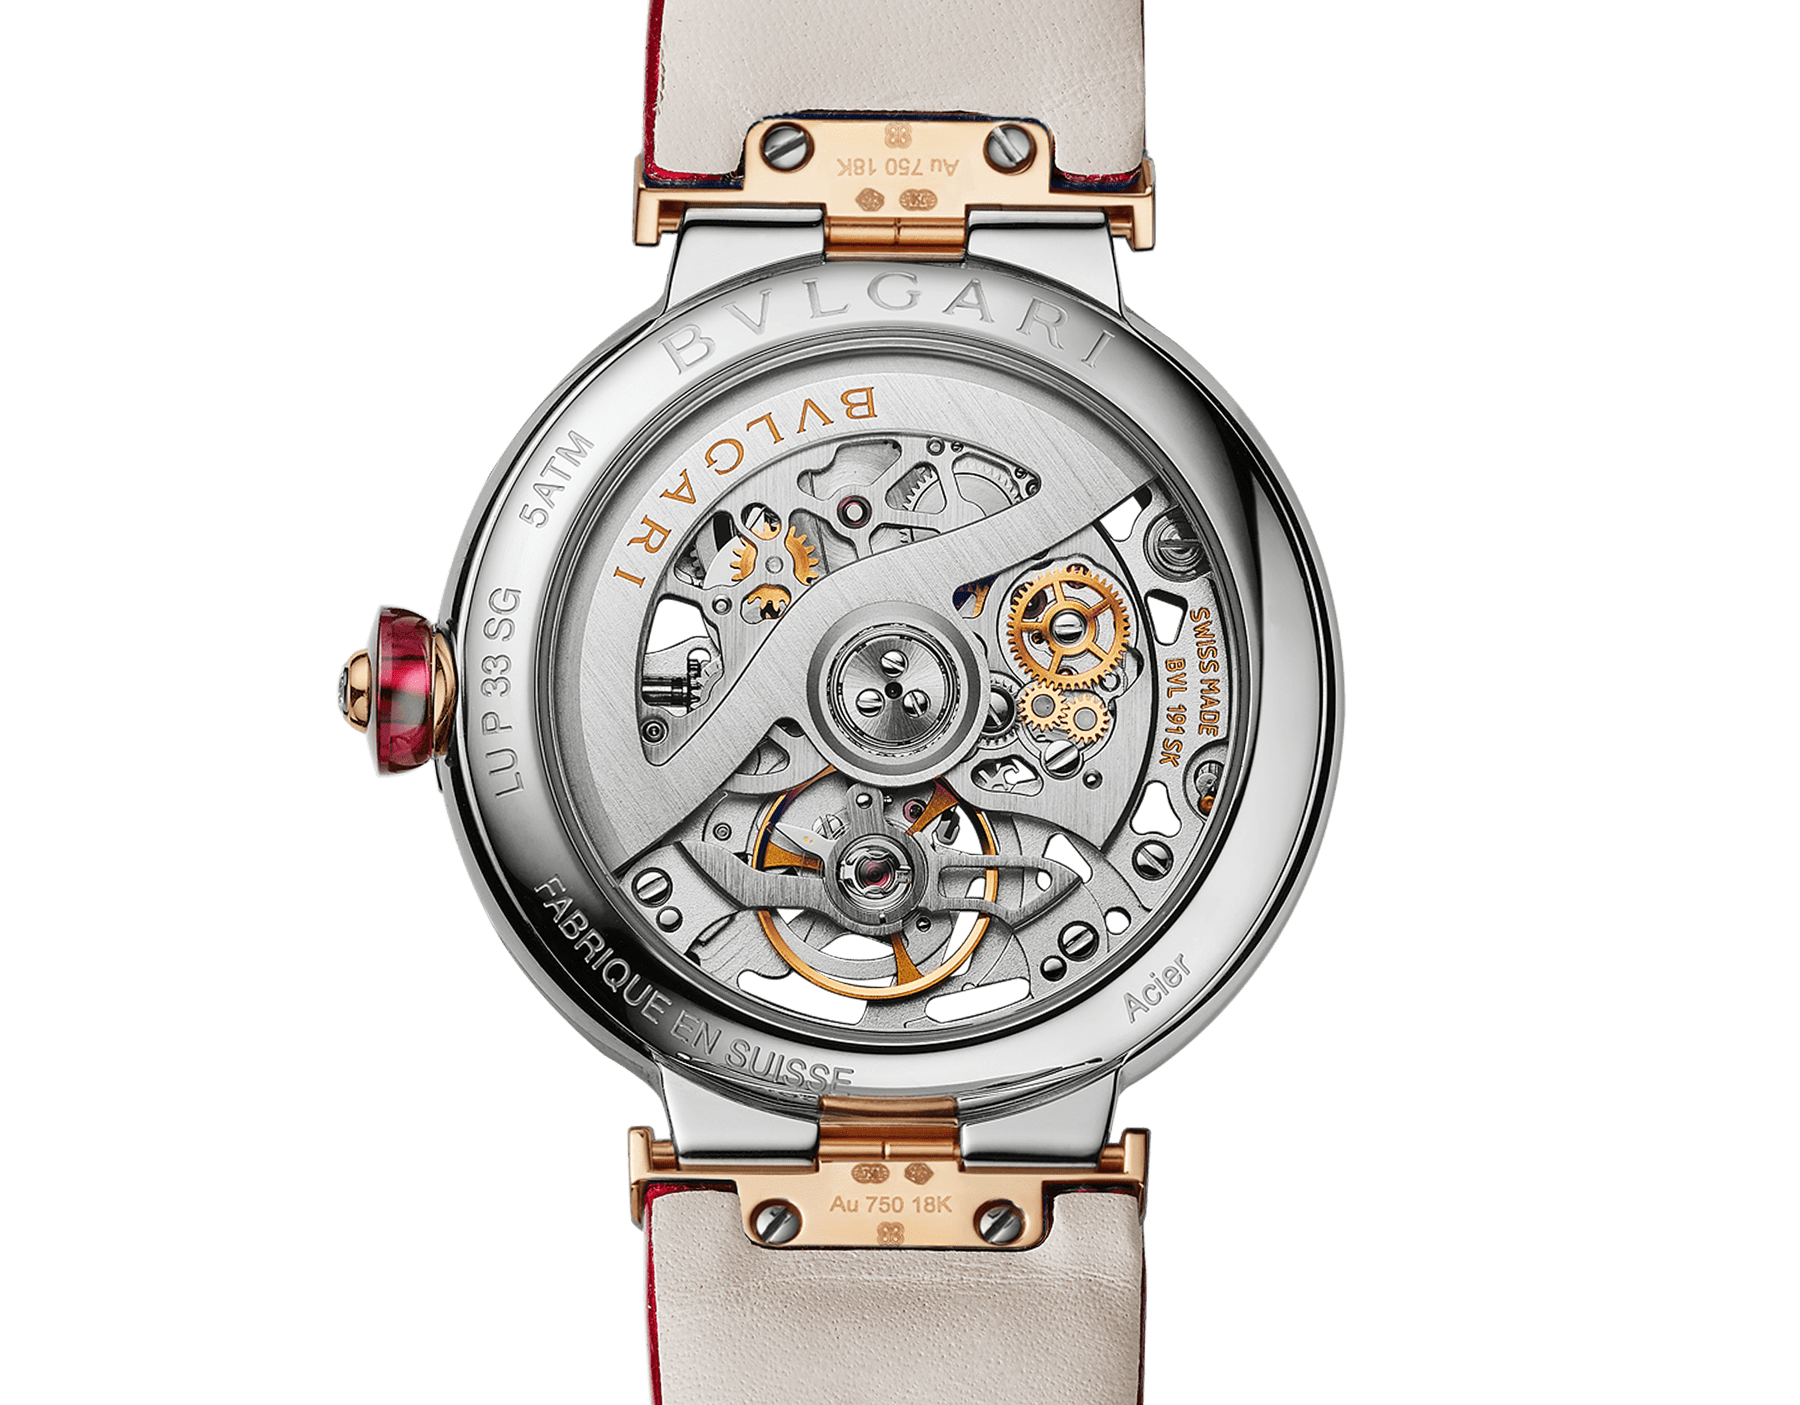 LVCEA Skeleton watch with mechanical manufacture movement, automatic winding and skeleton execution, polished stainless steel case, 18 kt rose gold bezel, openwork BVLGARI logo dial and links, and red alligator bracelet. Water-resistant up to 30 metres. 103373 image 3